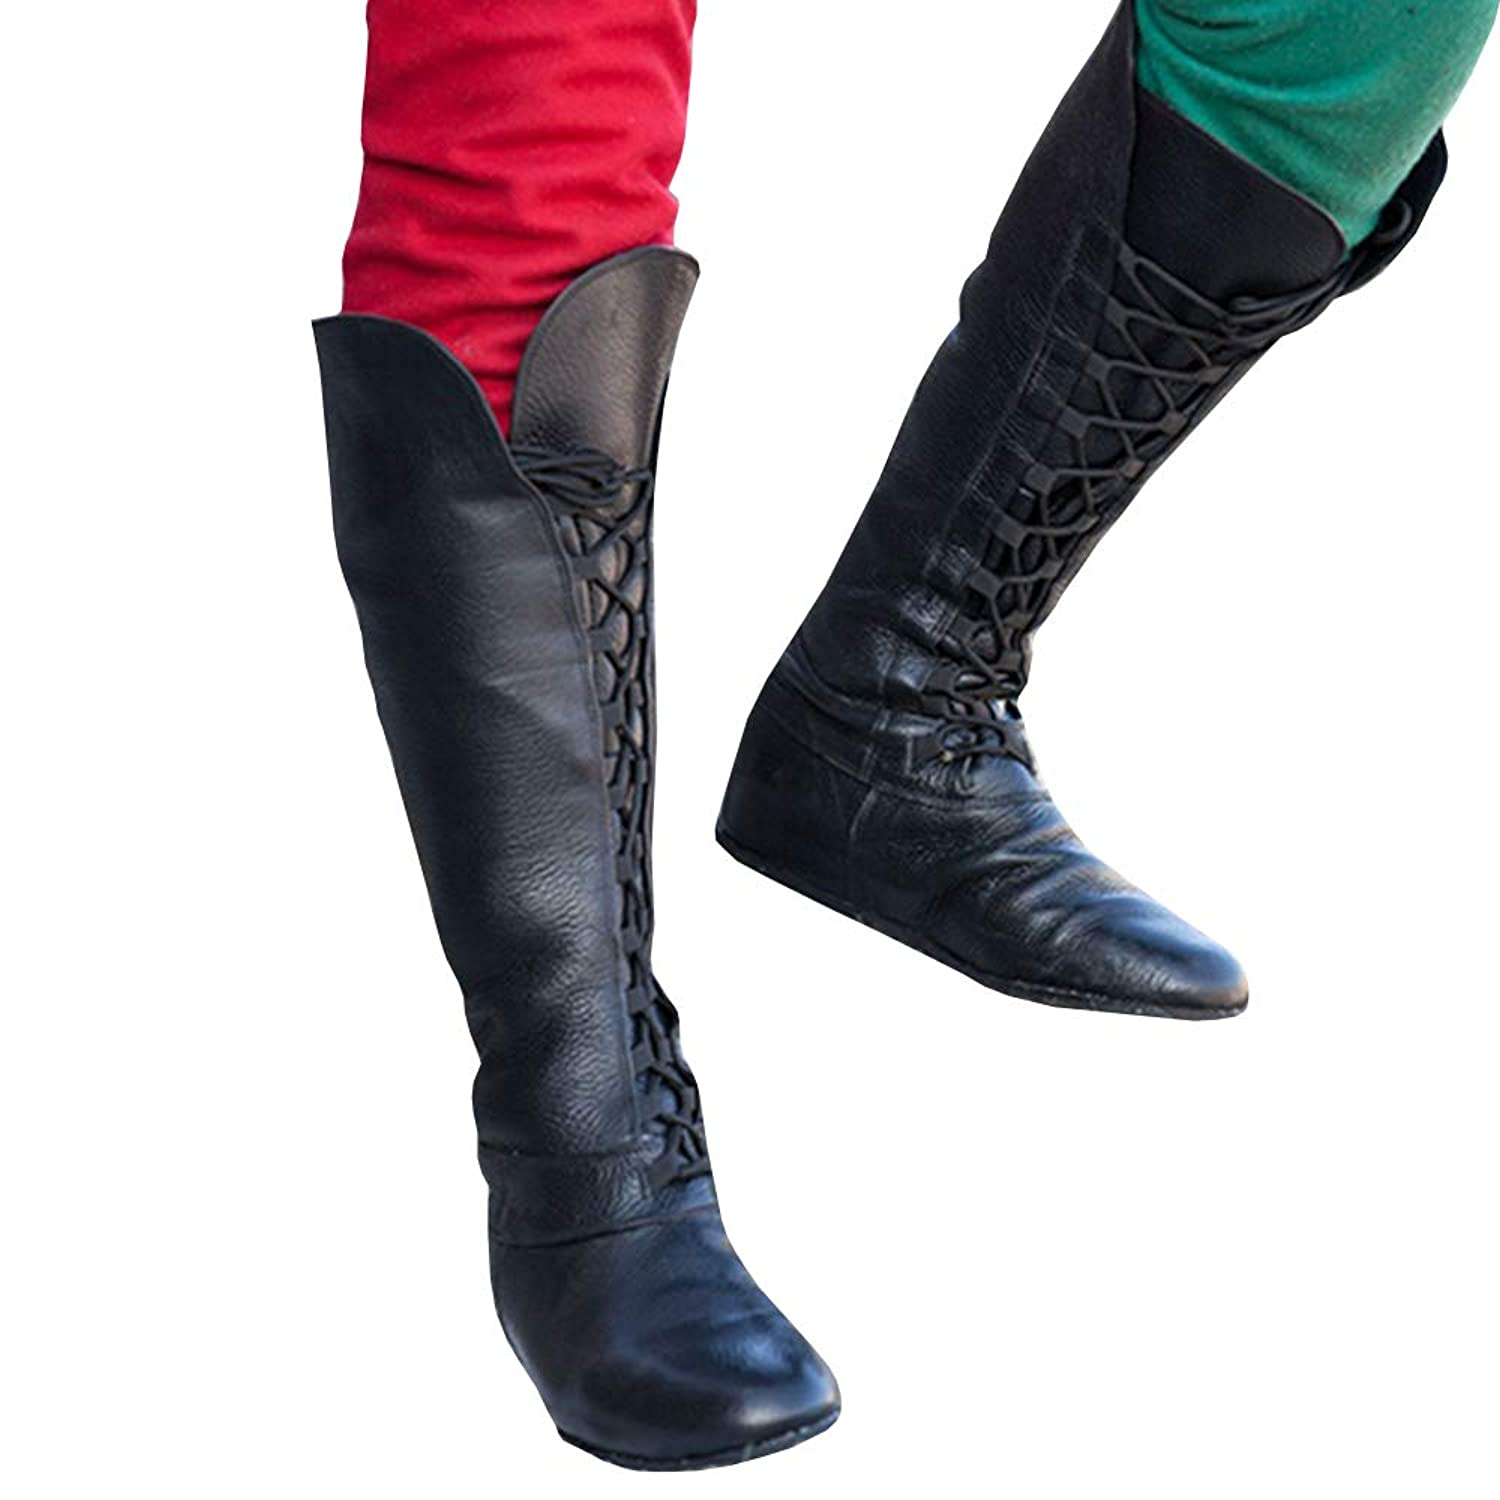 27f698cbc58 Medieval and Renaissance Men's Costume Boots & Shoes | Deluxe ...